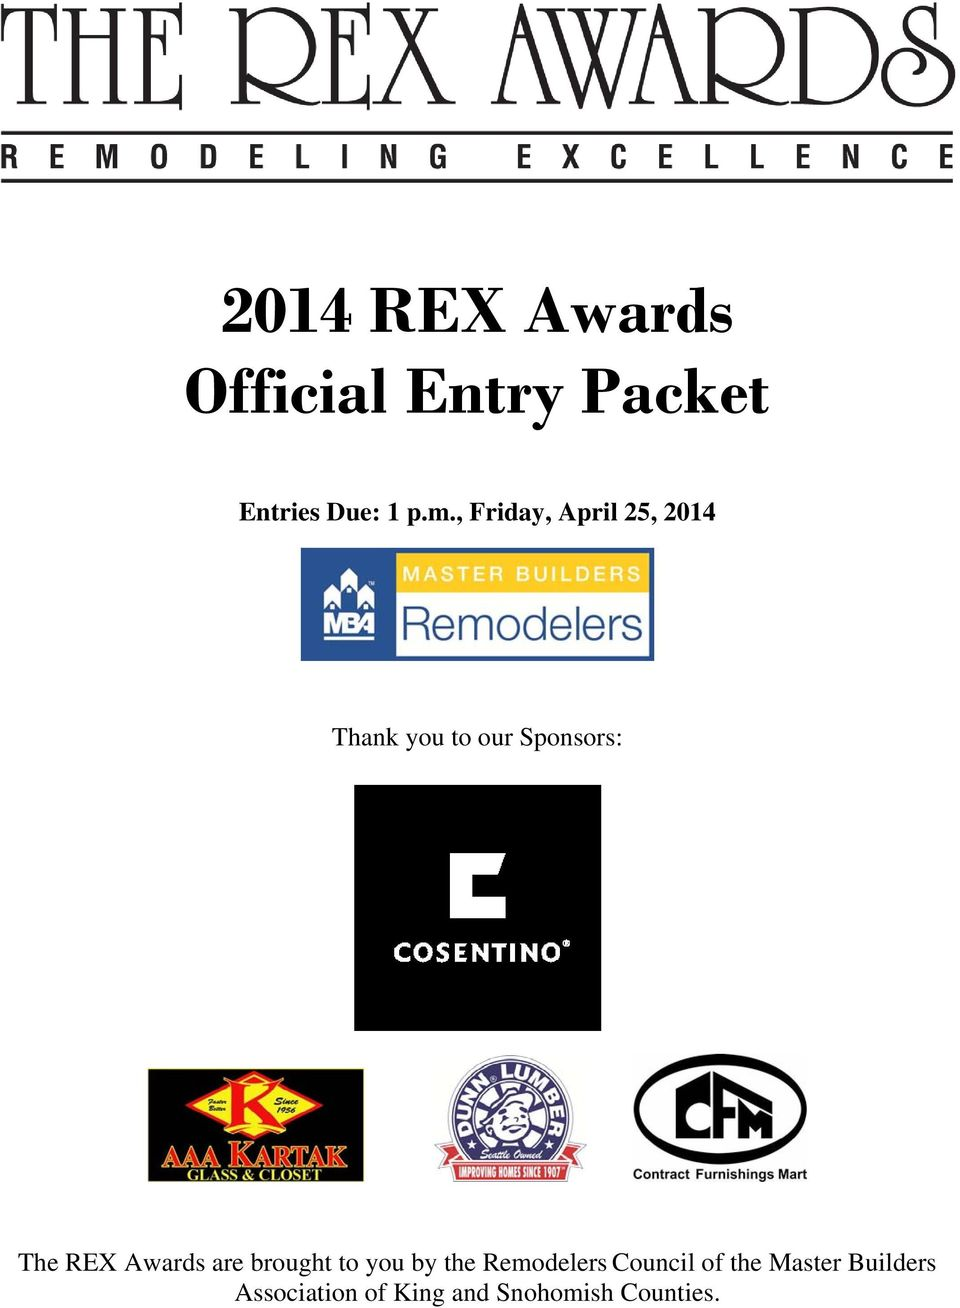 REX Awards are brought to you by the Remodelers Council of